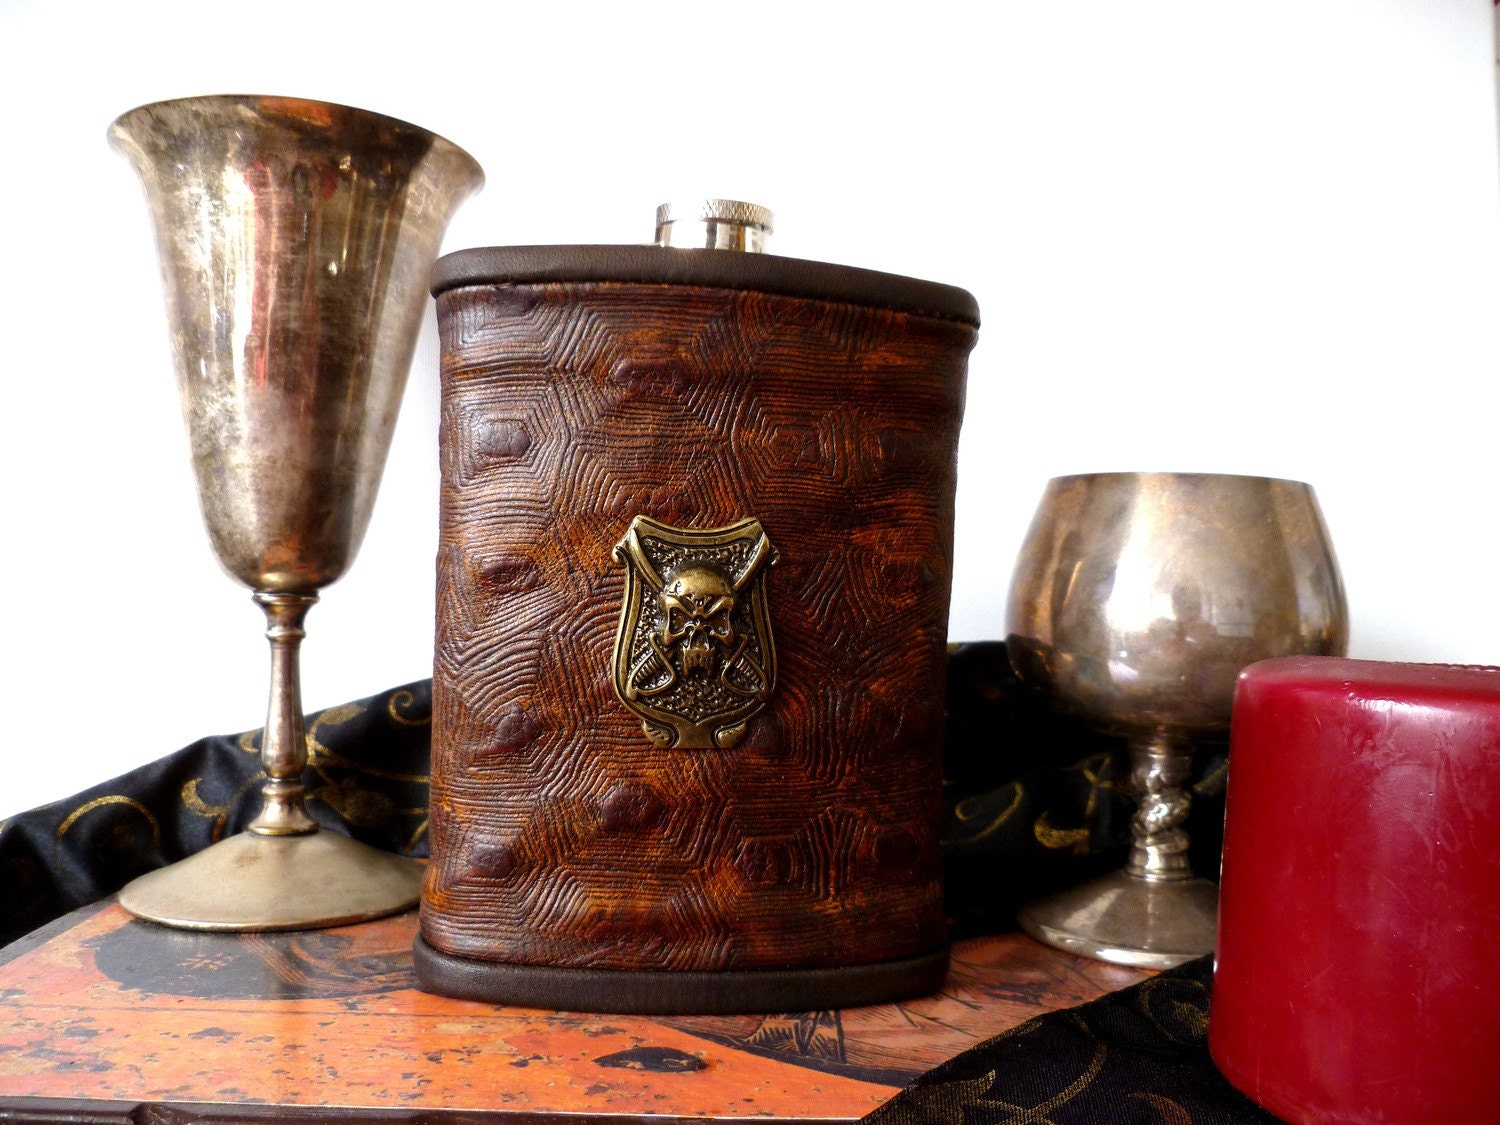 Unique Renaissance Pirate Leather Flask with Bronze Pirate Shield Emblem - jattreasury